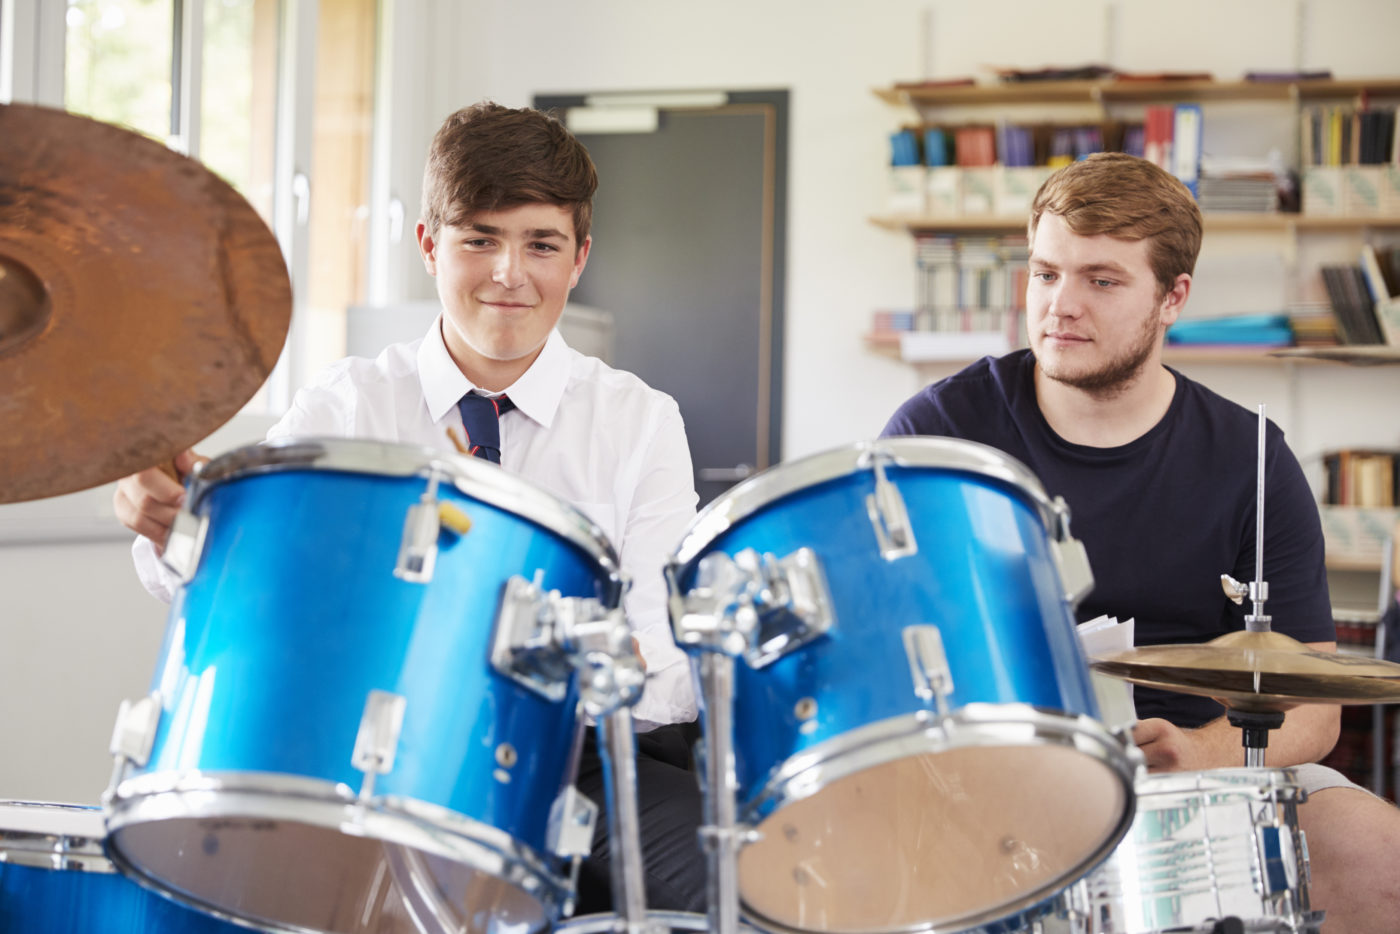 male-pupil-with-teacher-playing-drums-in-music-PJXEZDQ-2-e1541078668125.jpg